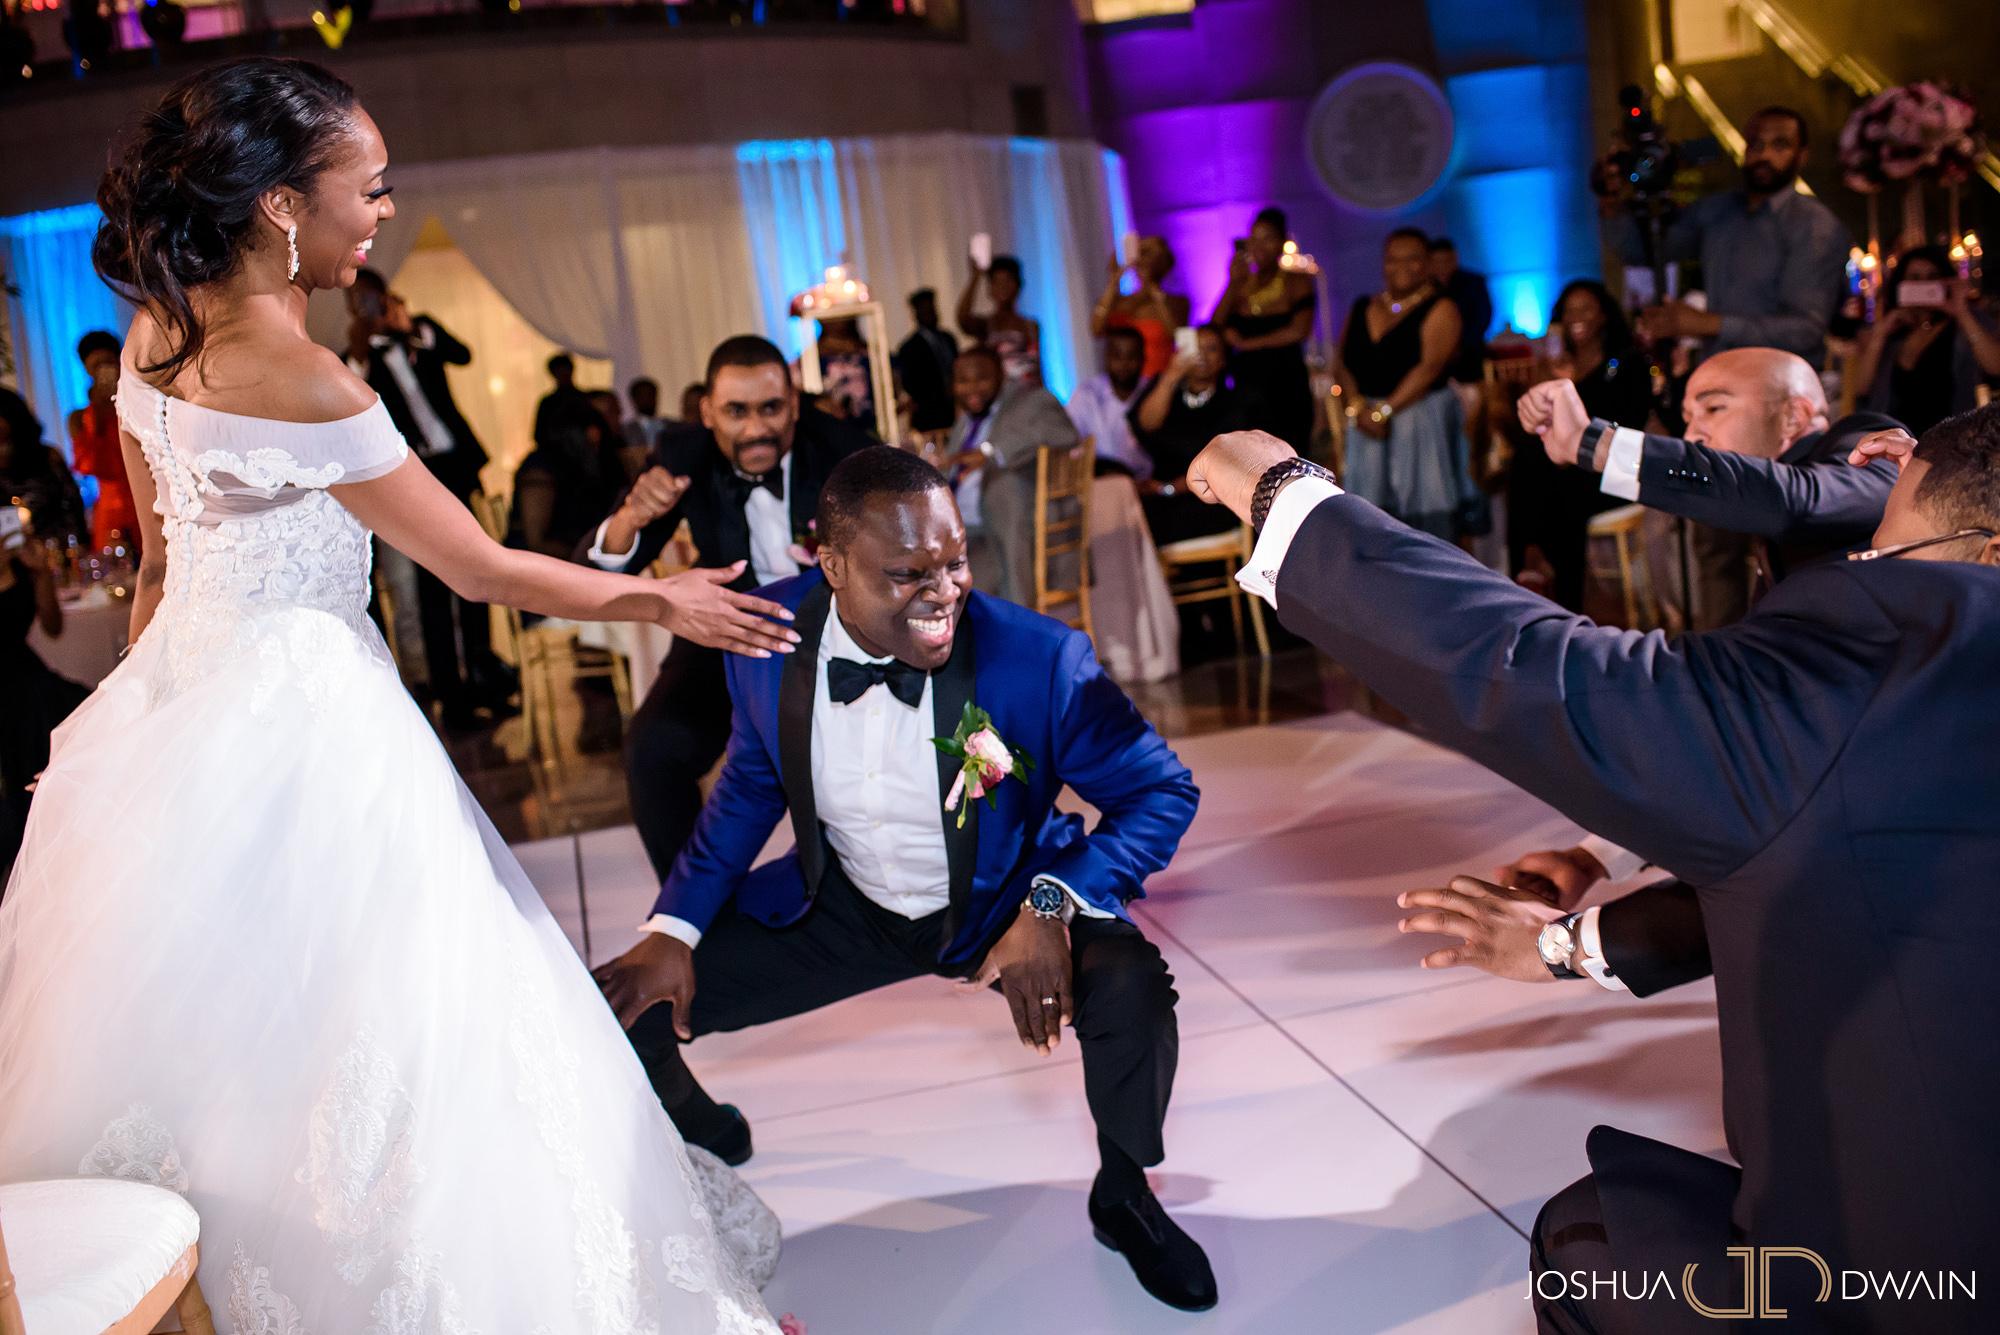 emerald-tolu--048-ronald-reagan-building-trade-center-best-washington-dc--wedding-photographer-joshua-dwain